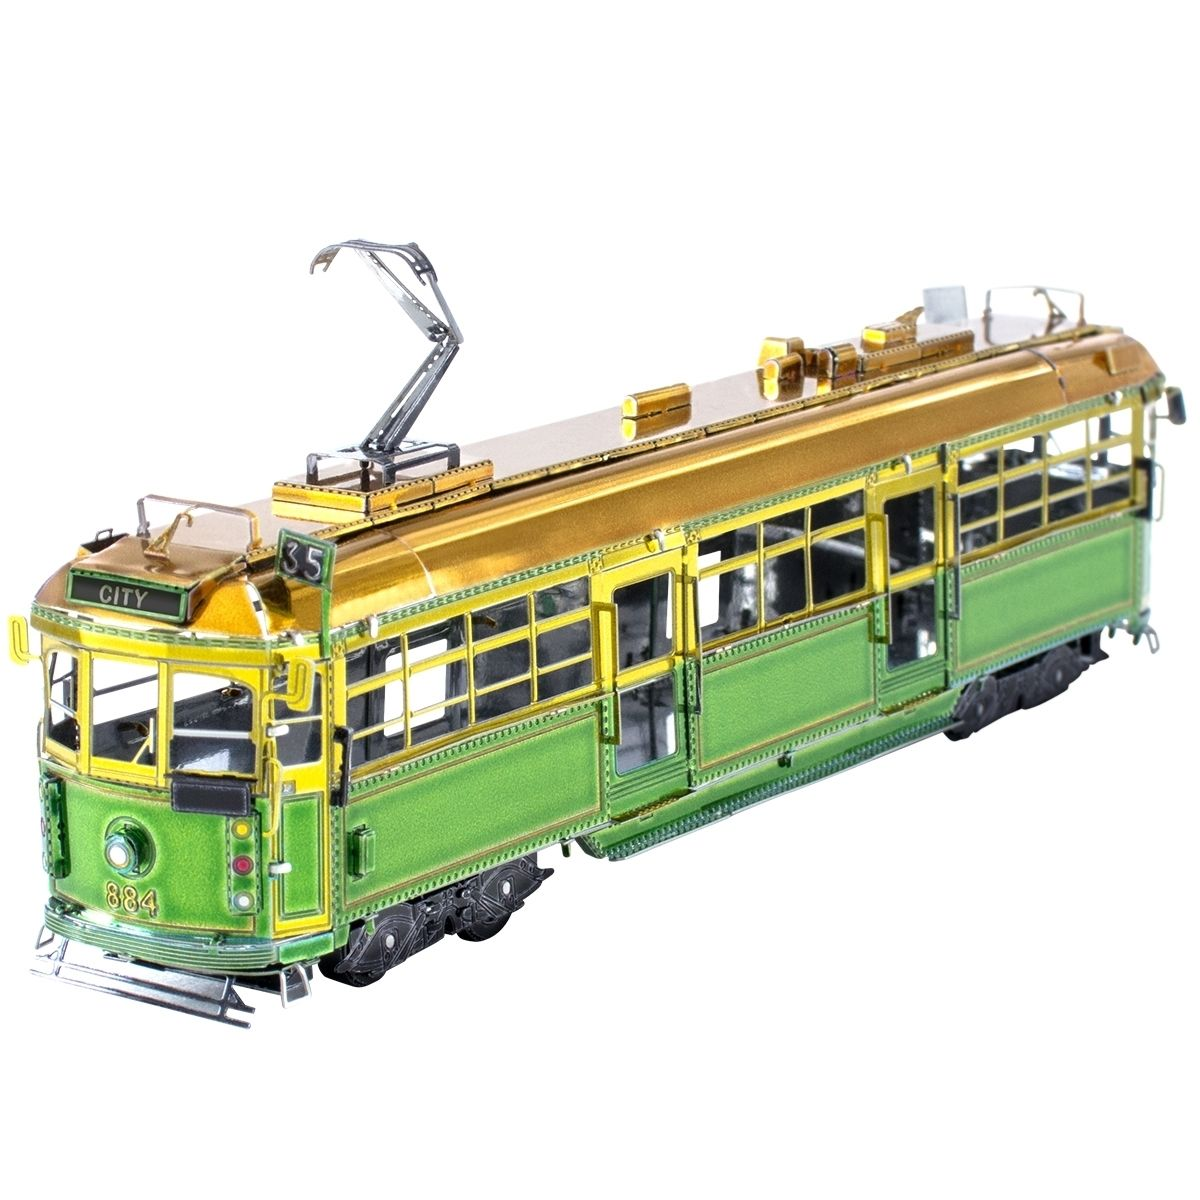 Metal Earth Melbourne W-Class Tram Kit